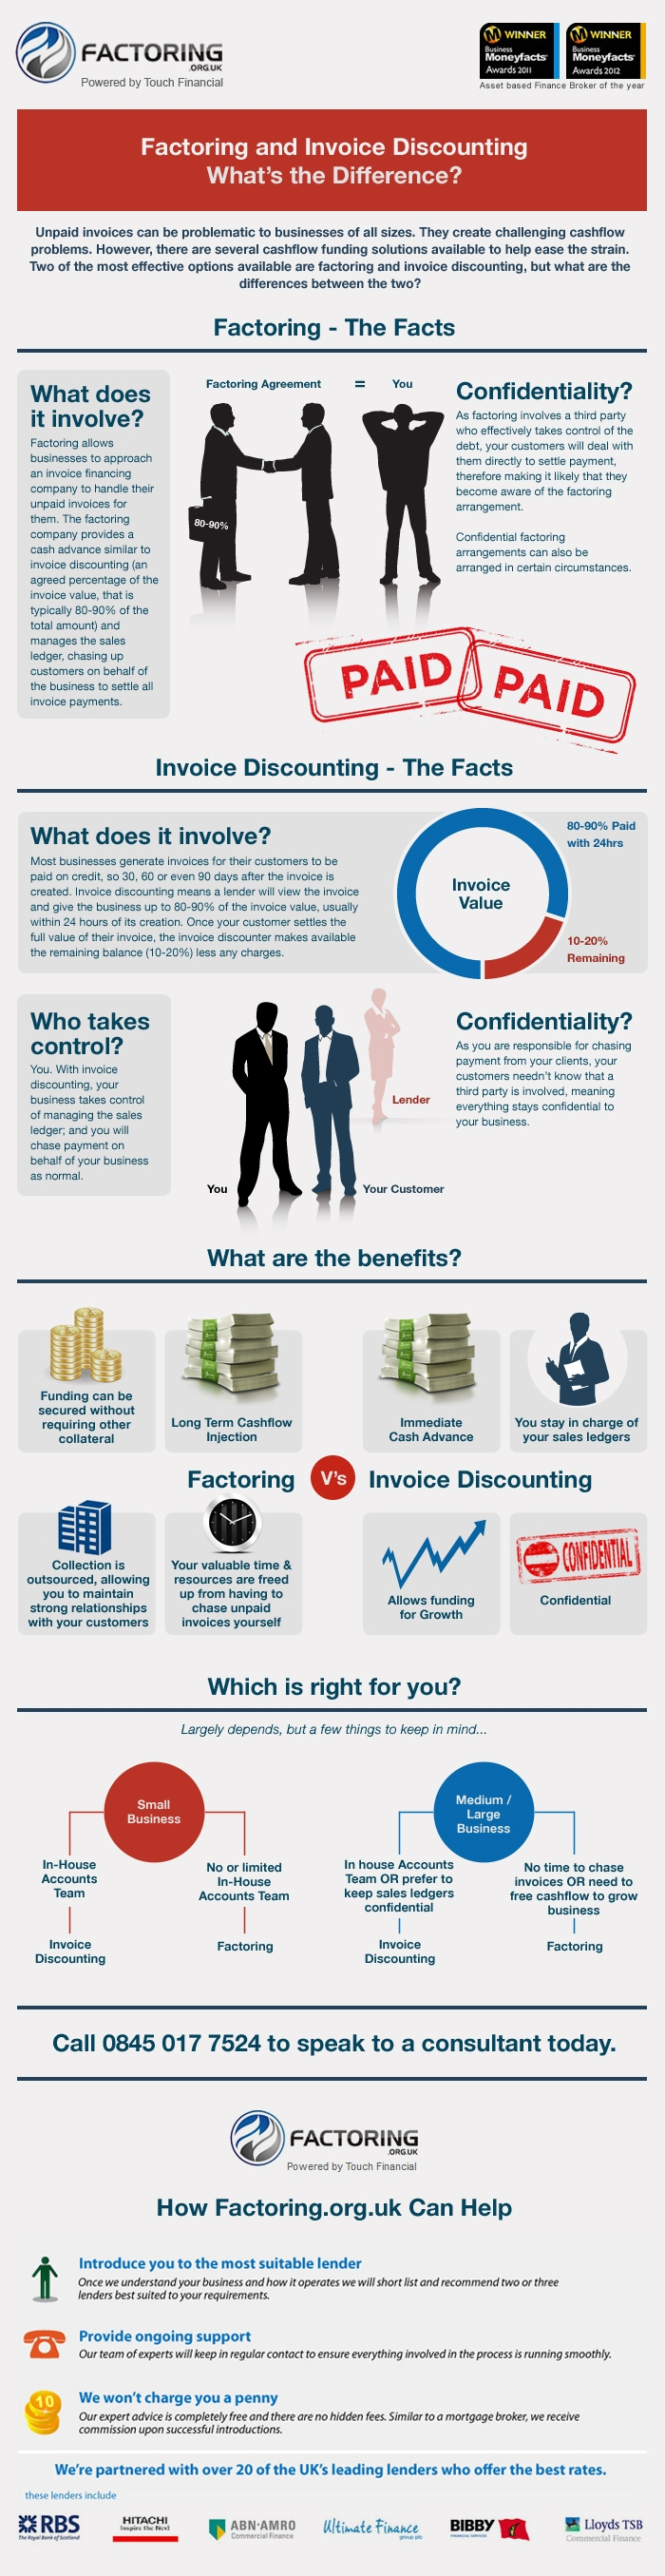 recruitment business financing factoring touch financial difference between factoring and invoice discounting